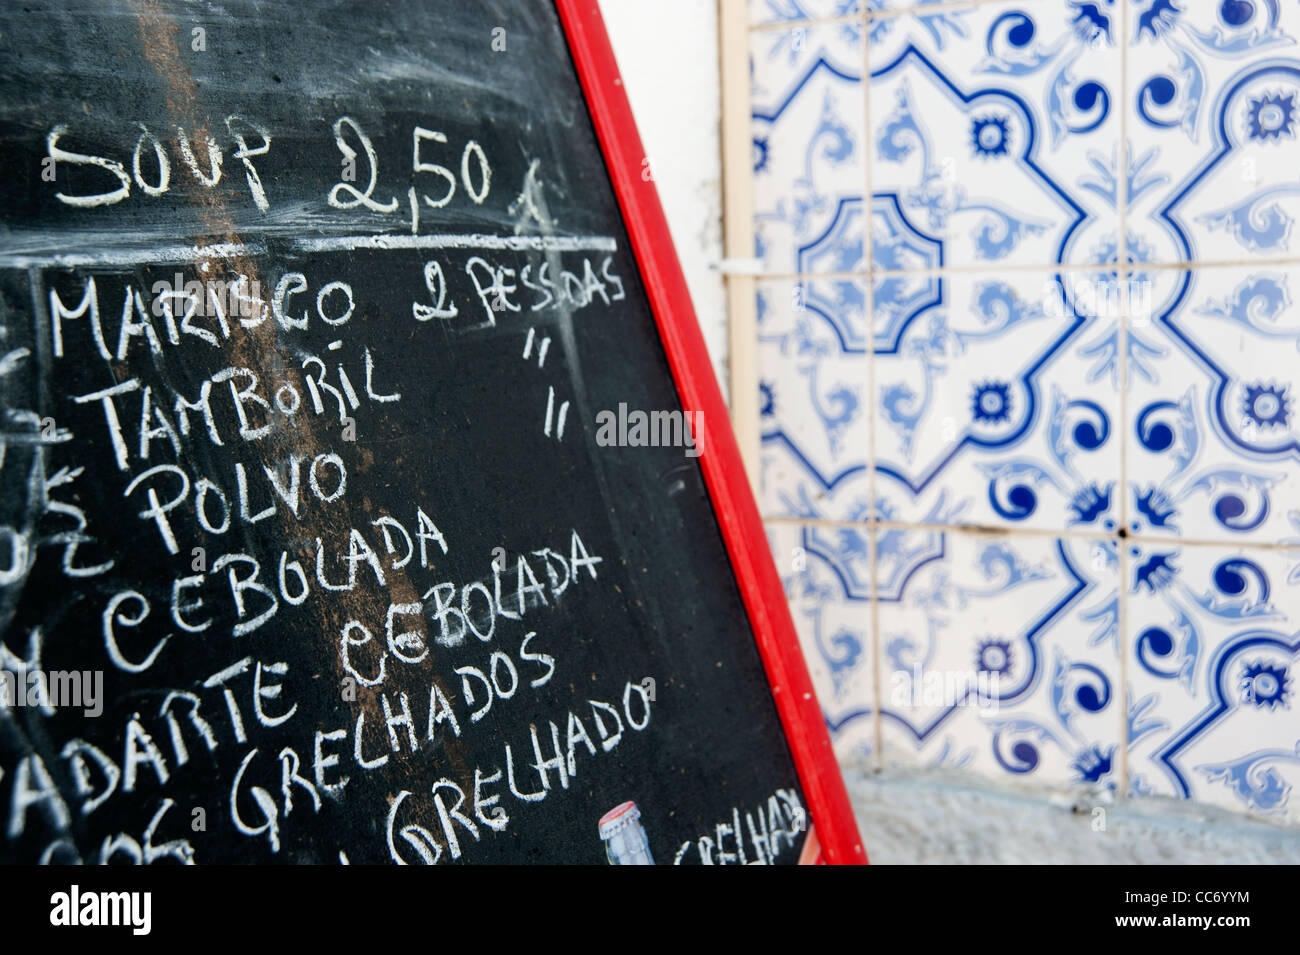 Azulejos, tiles and menu card in the town of Tavira, eastern Algarve, Portugal, Europe. - Stock Image